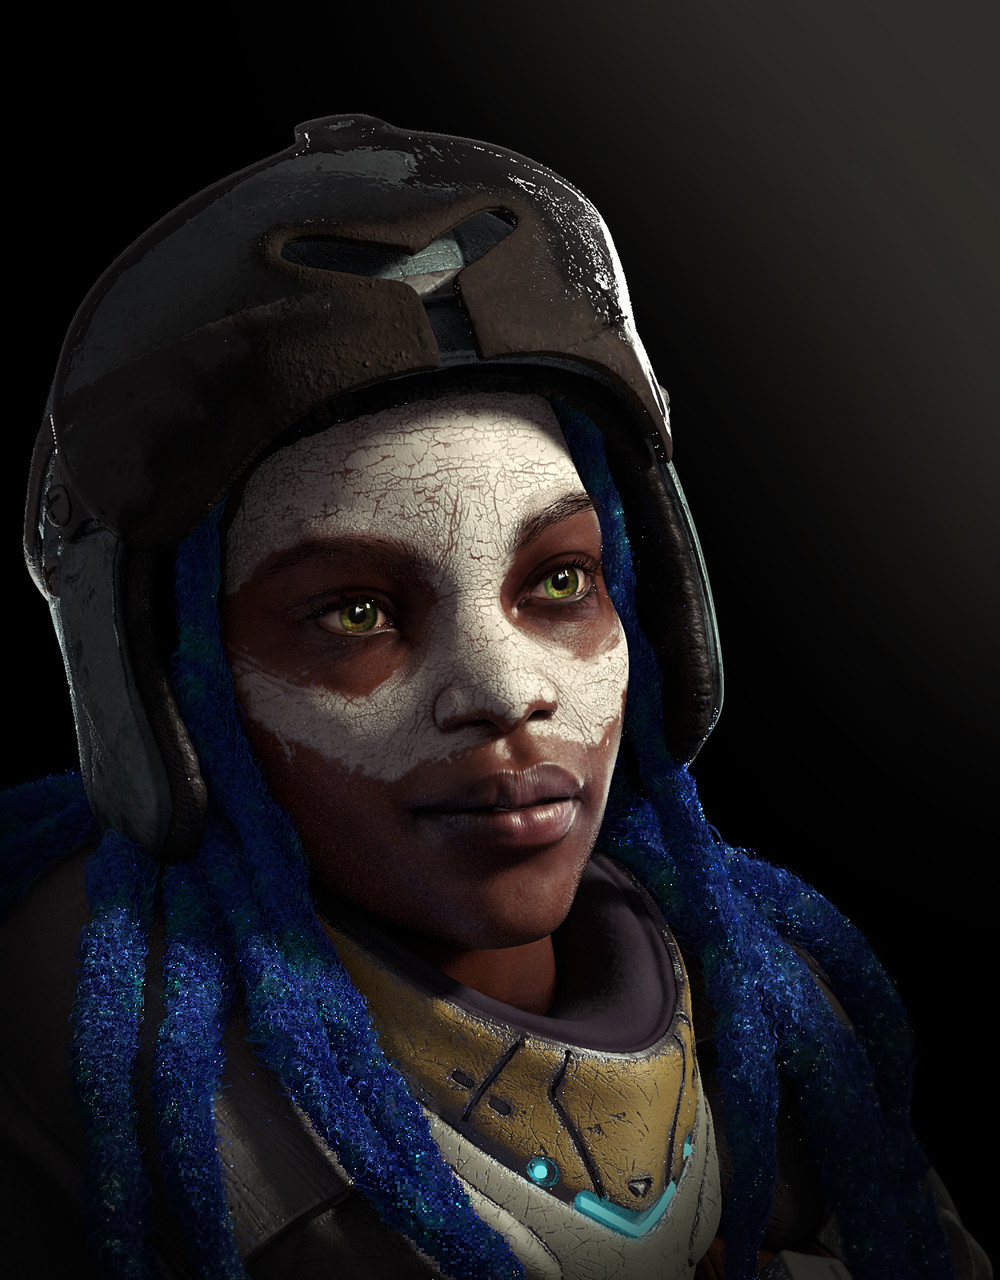 1st Place, Beyond Human: Film/VFX Character Art (rendered)